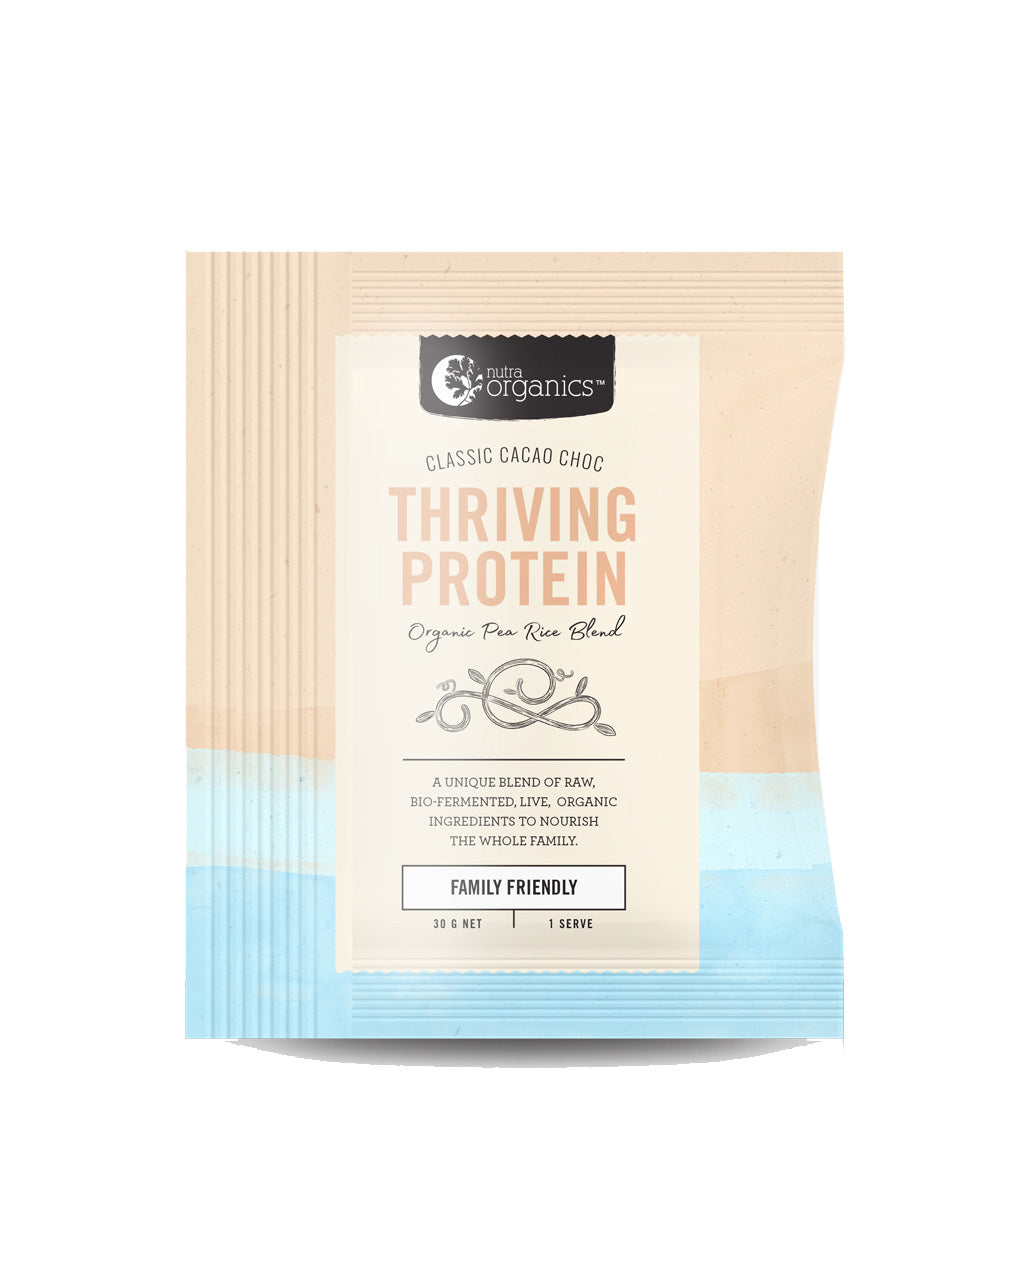 Nutra Organics Thriving Protein - Cacao Choc *Single Serve Sachet*